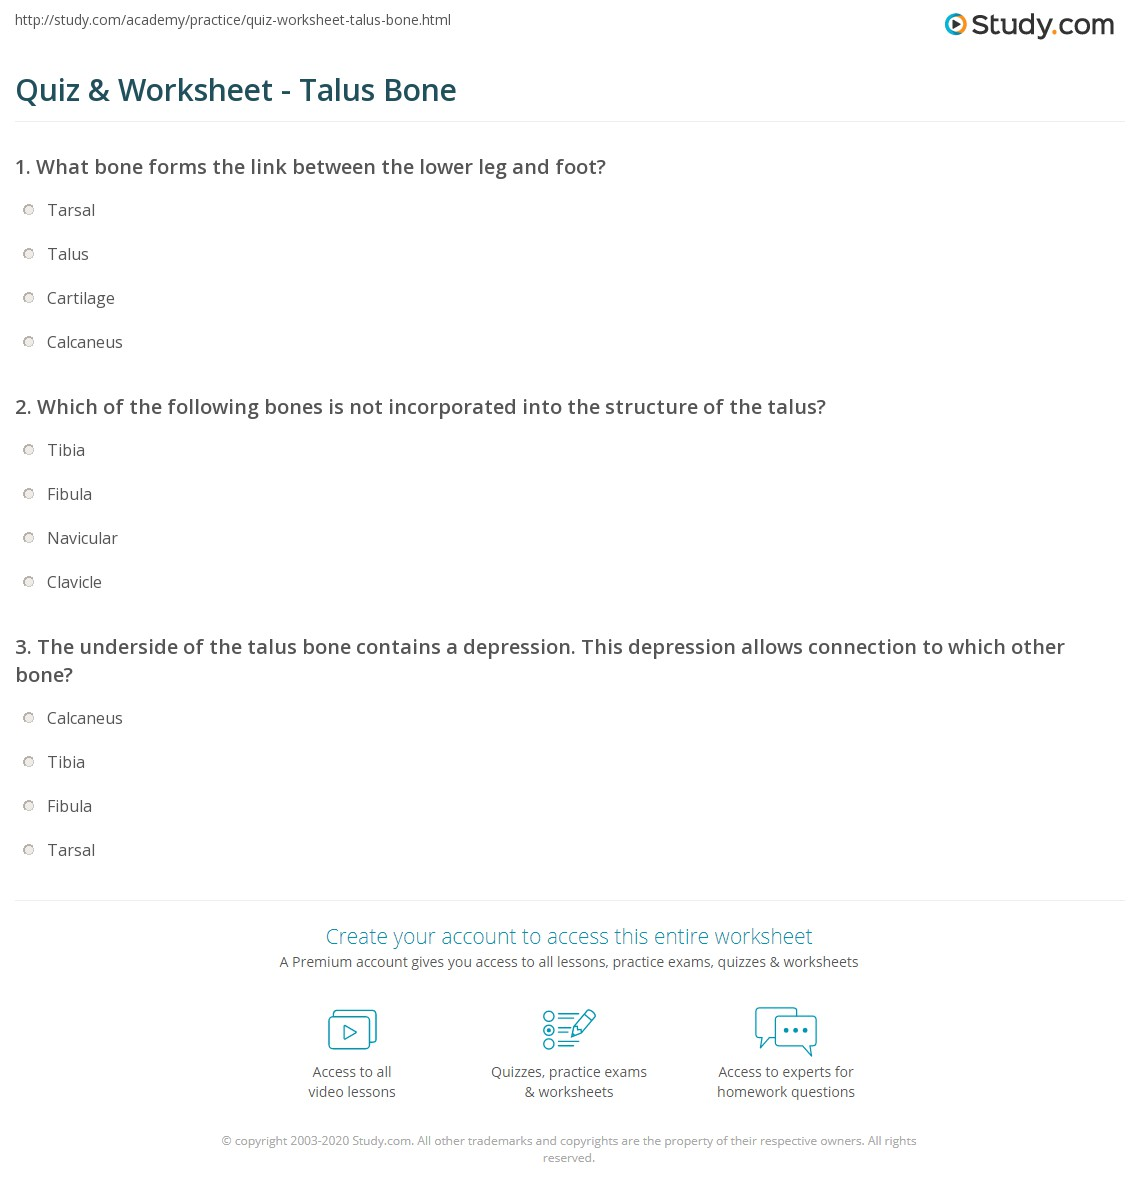 Quiz & Worksheet - Talus Bone | Study.com